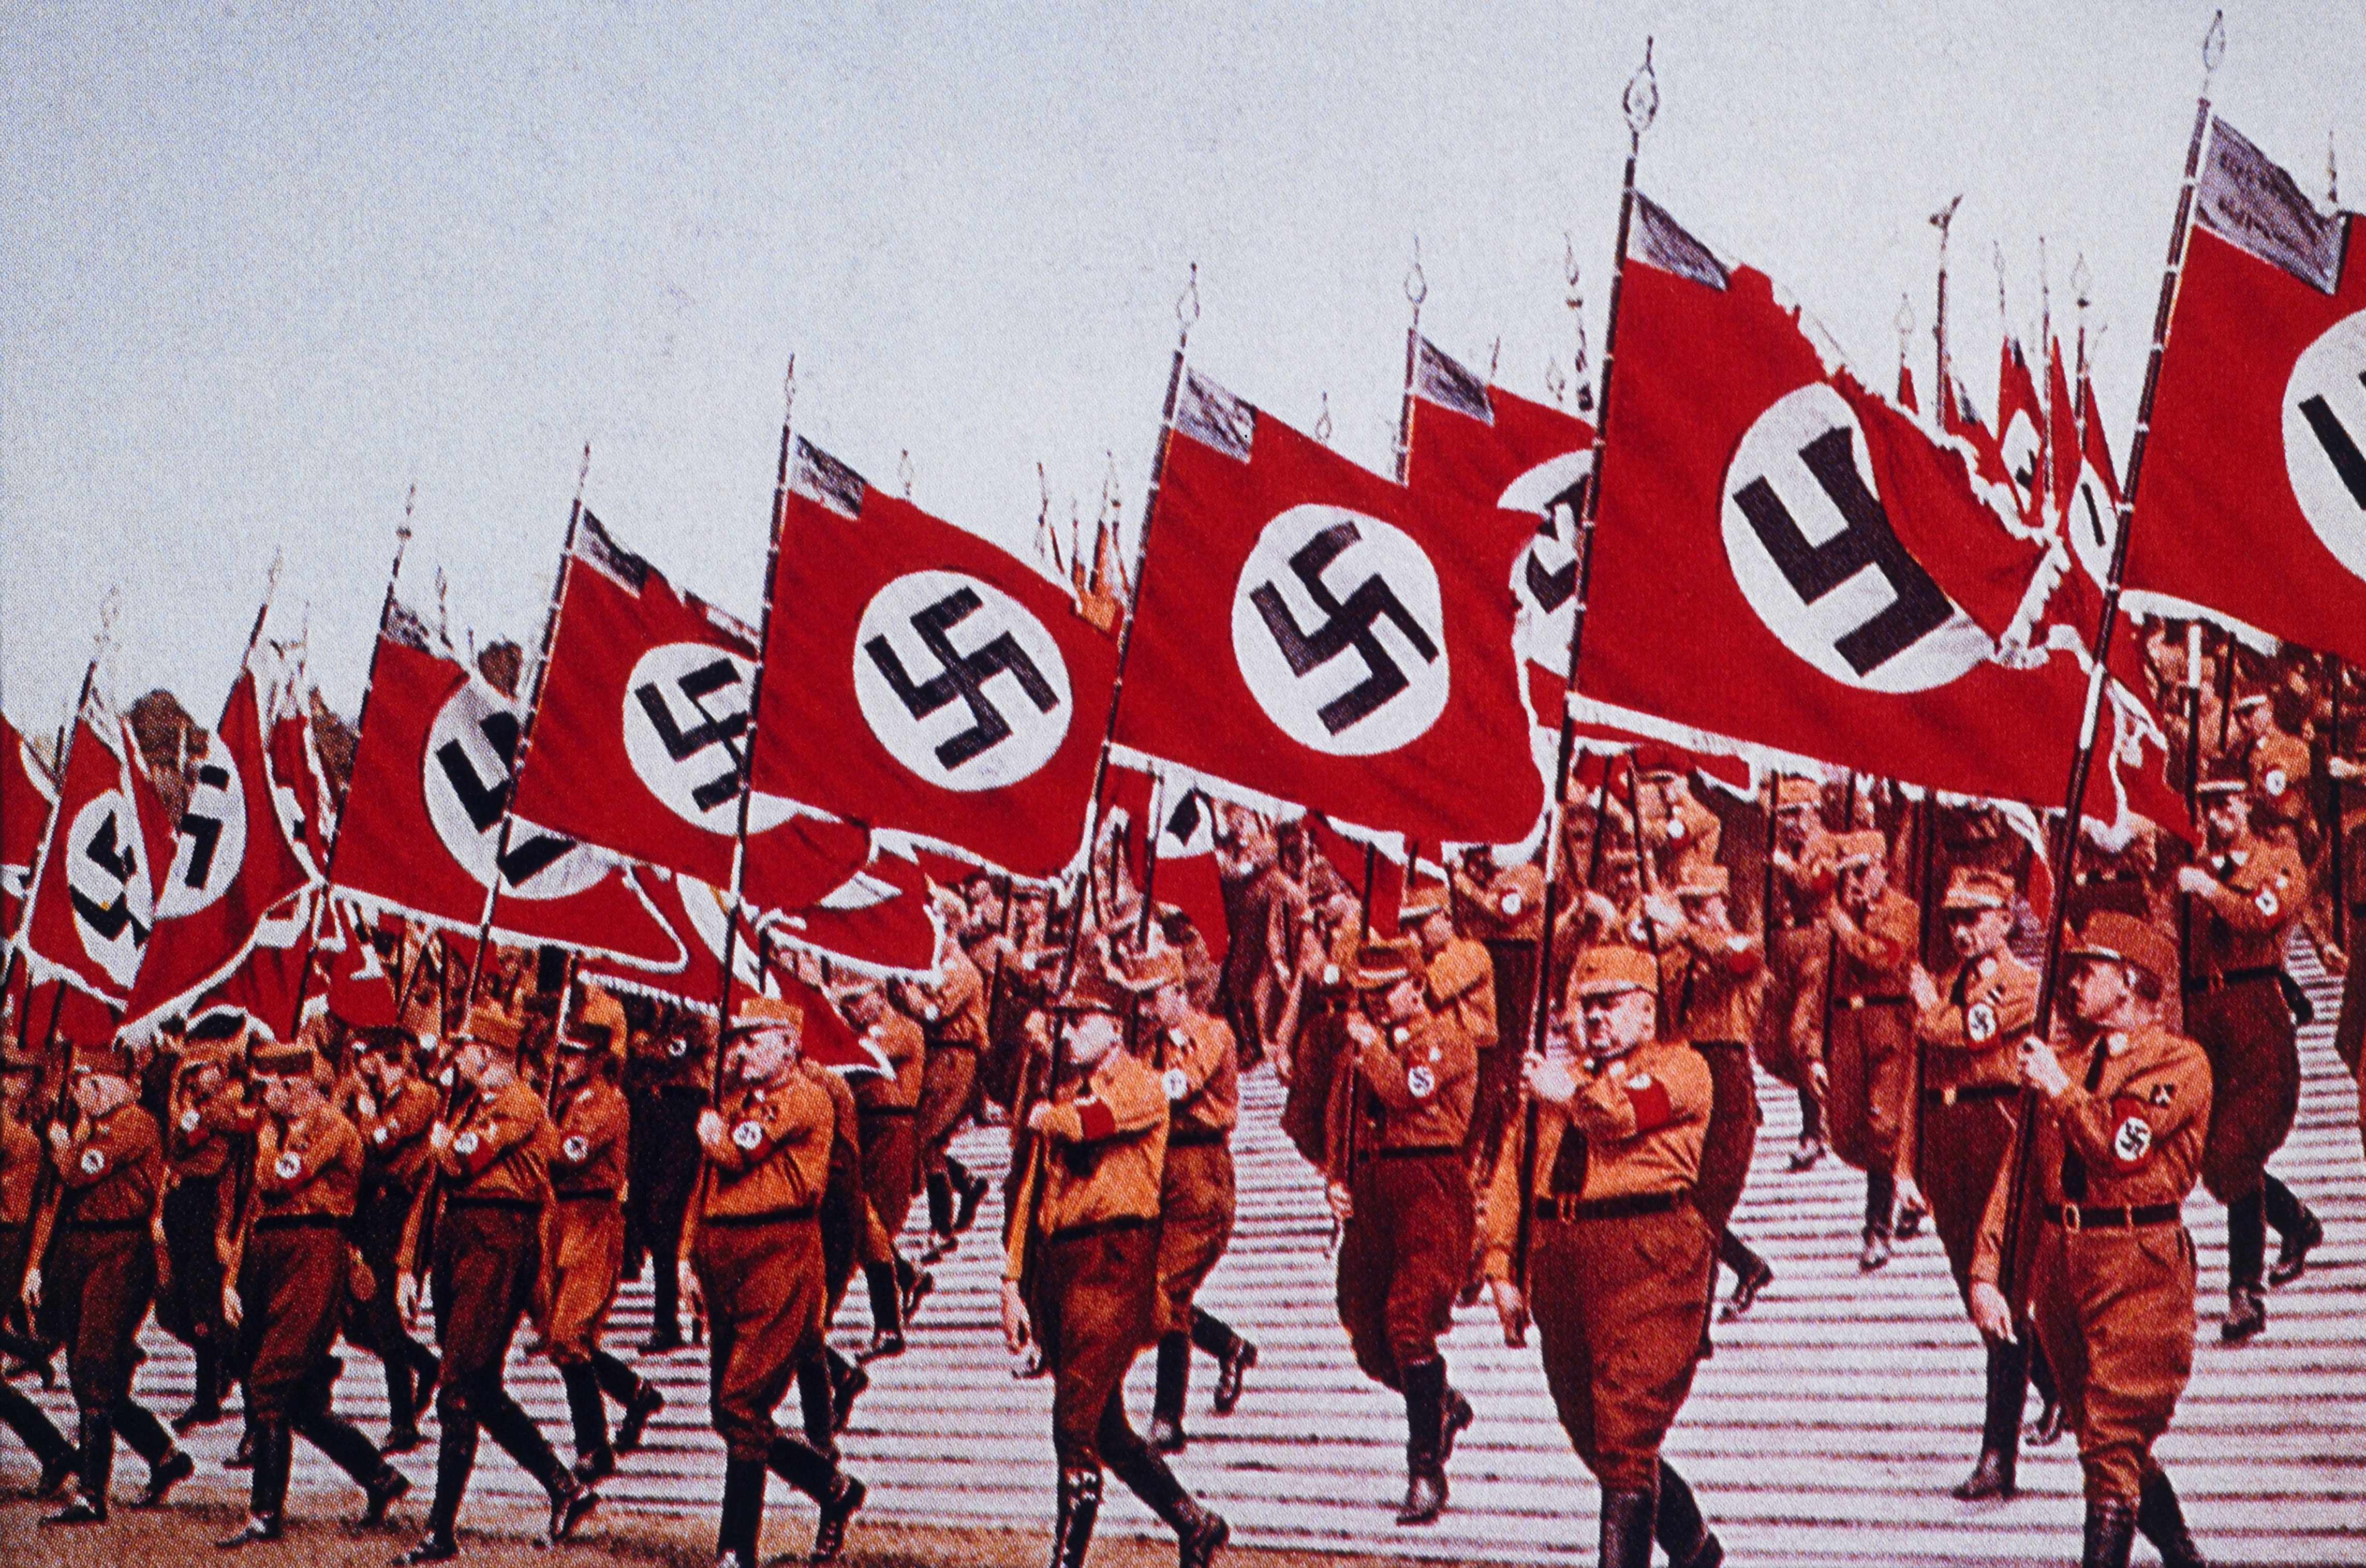 German SA Troops Marching with Nazi Flags at Nuremberg, 1933. © Getty